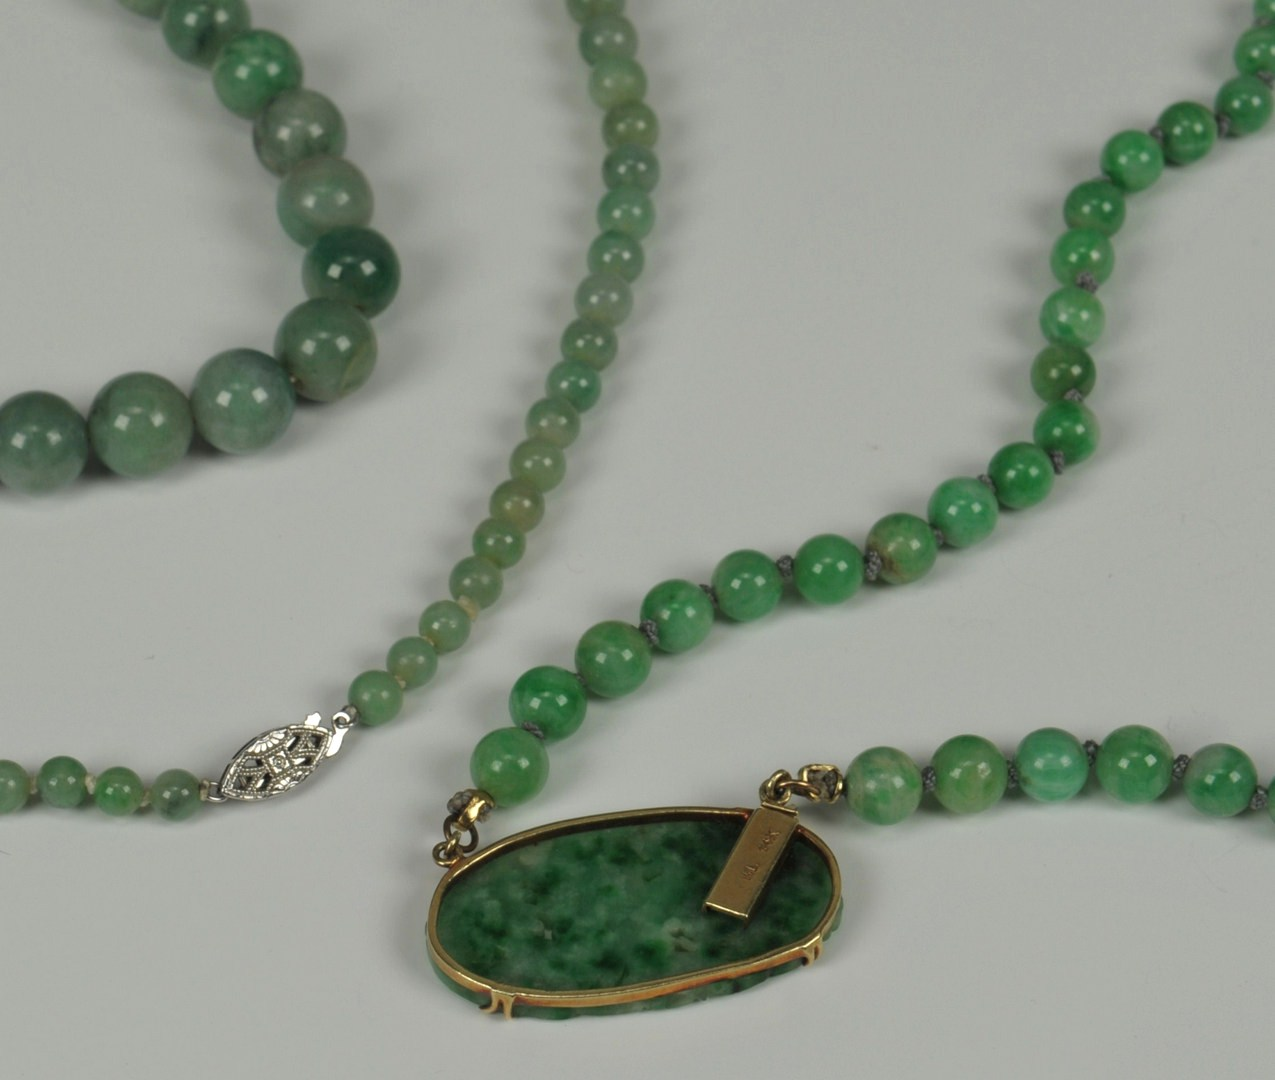 Lot 213: Two Jade and gold necklaces